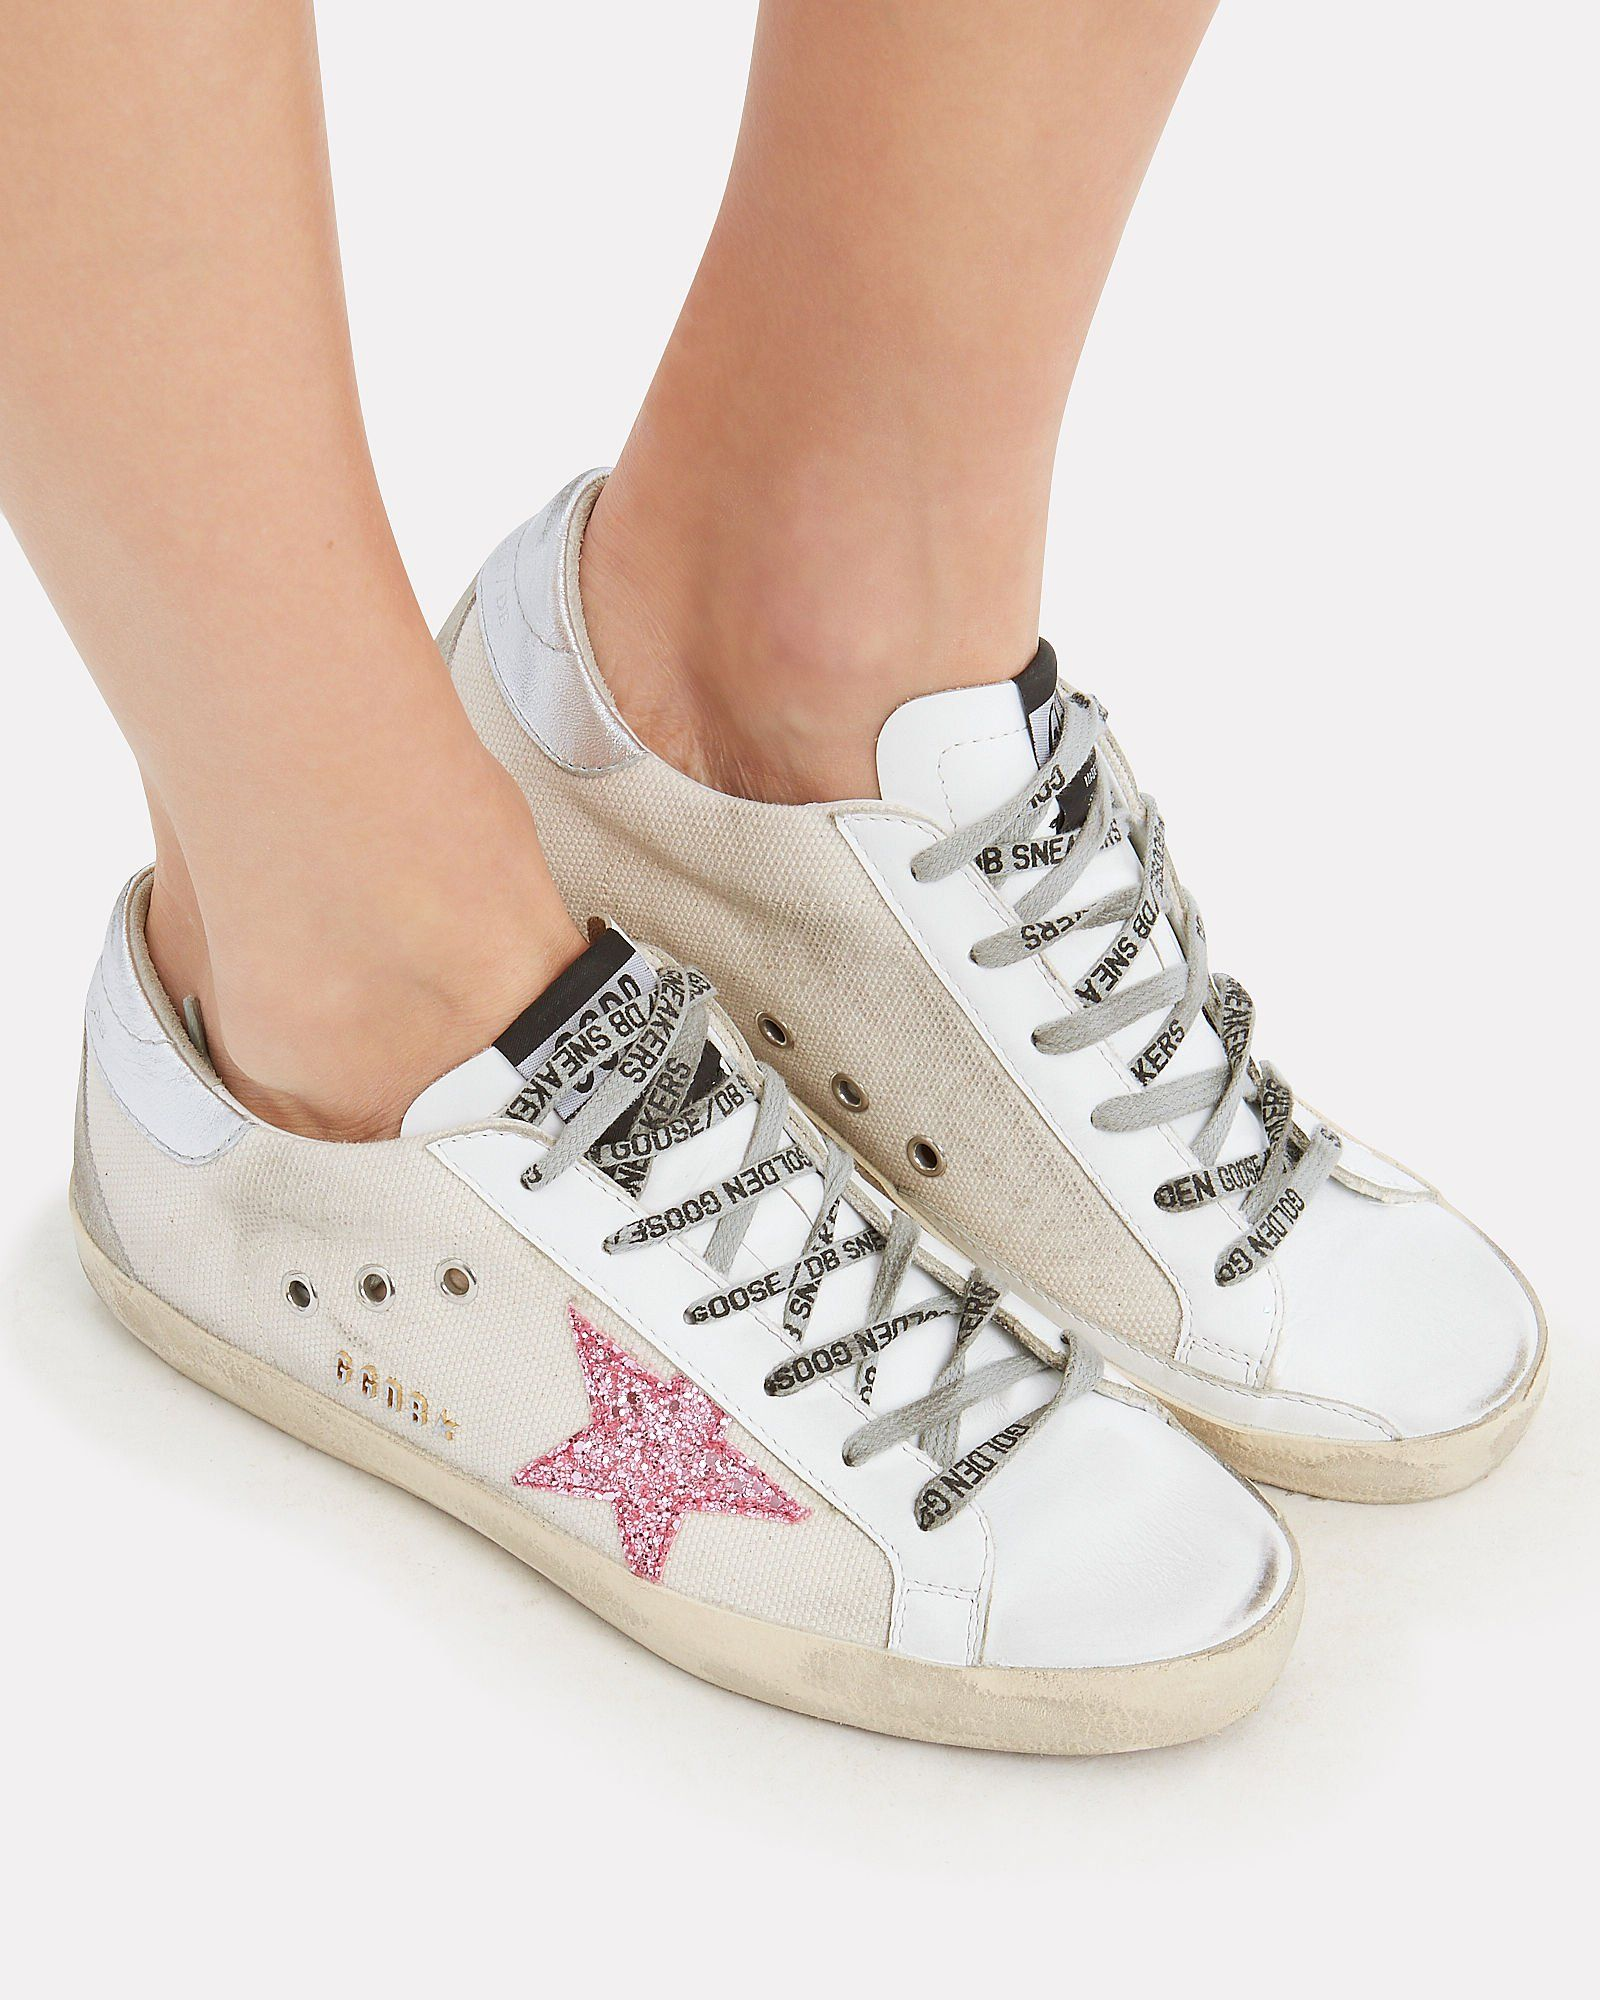 Golden Goose Superstar sneakers with rose glitter star